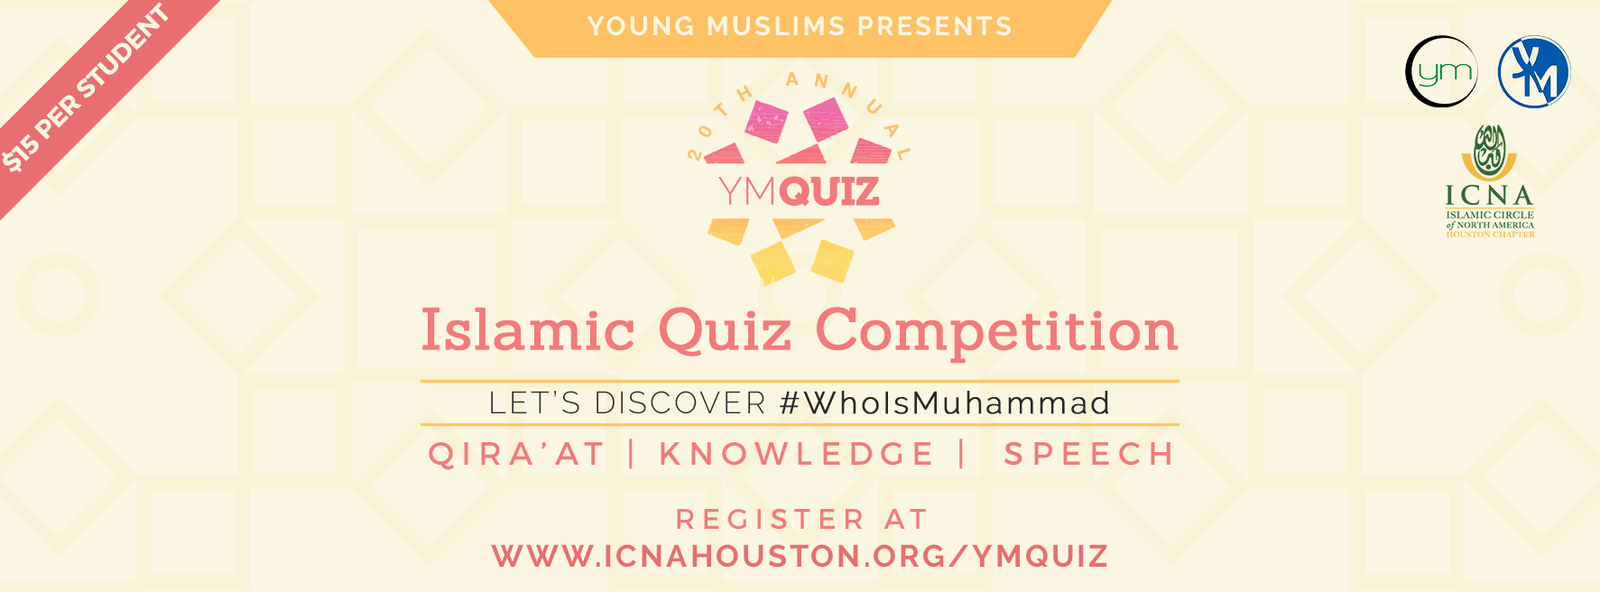 YMQuiz-Event-Page-Cover-Photo